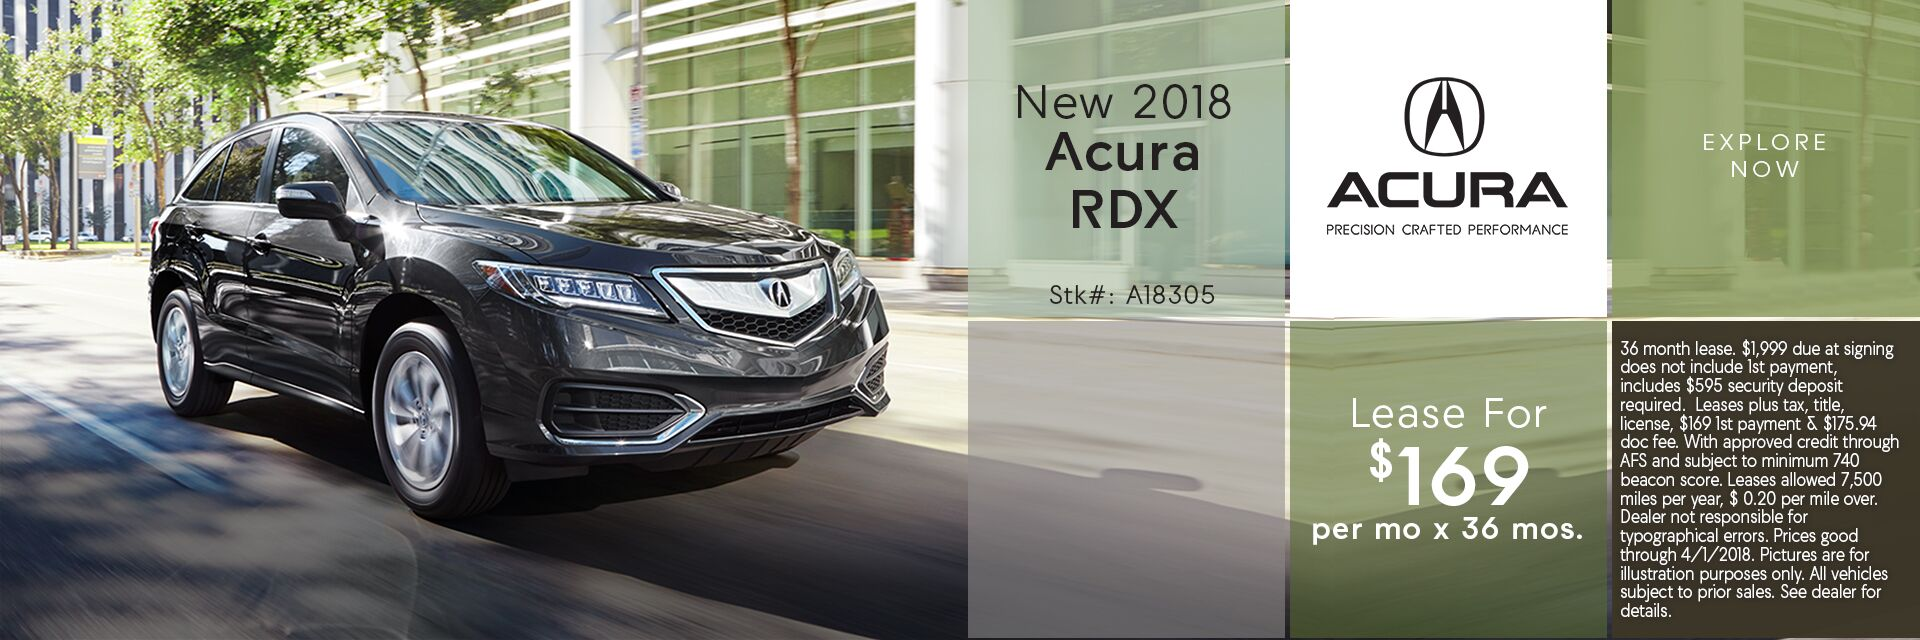 Lease the New 2018 Acura RDX